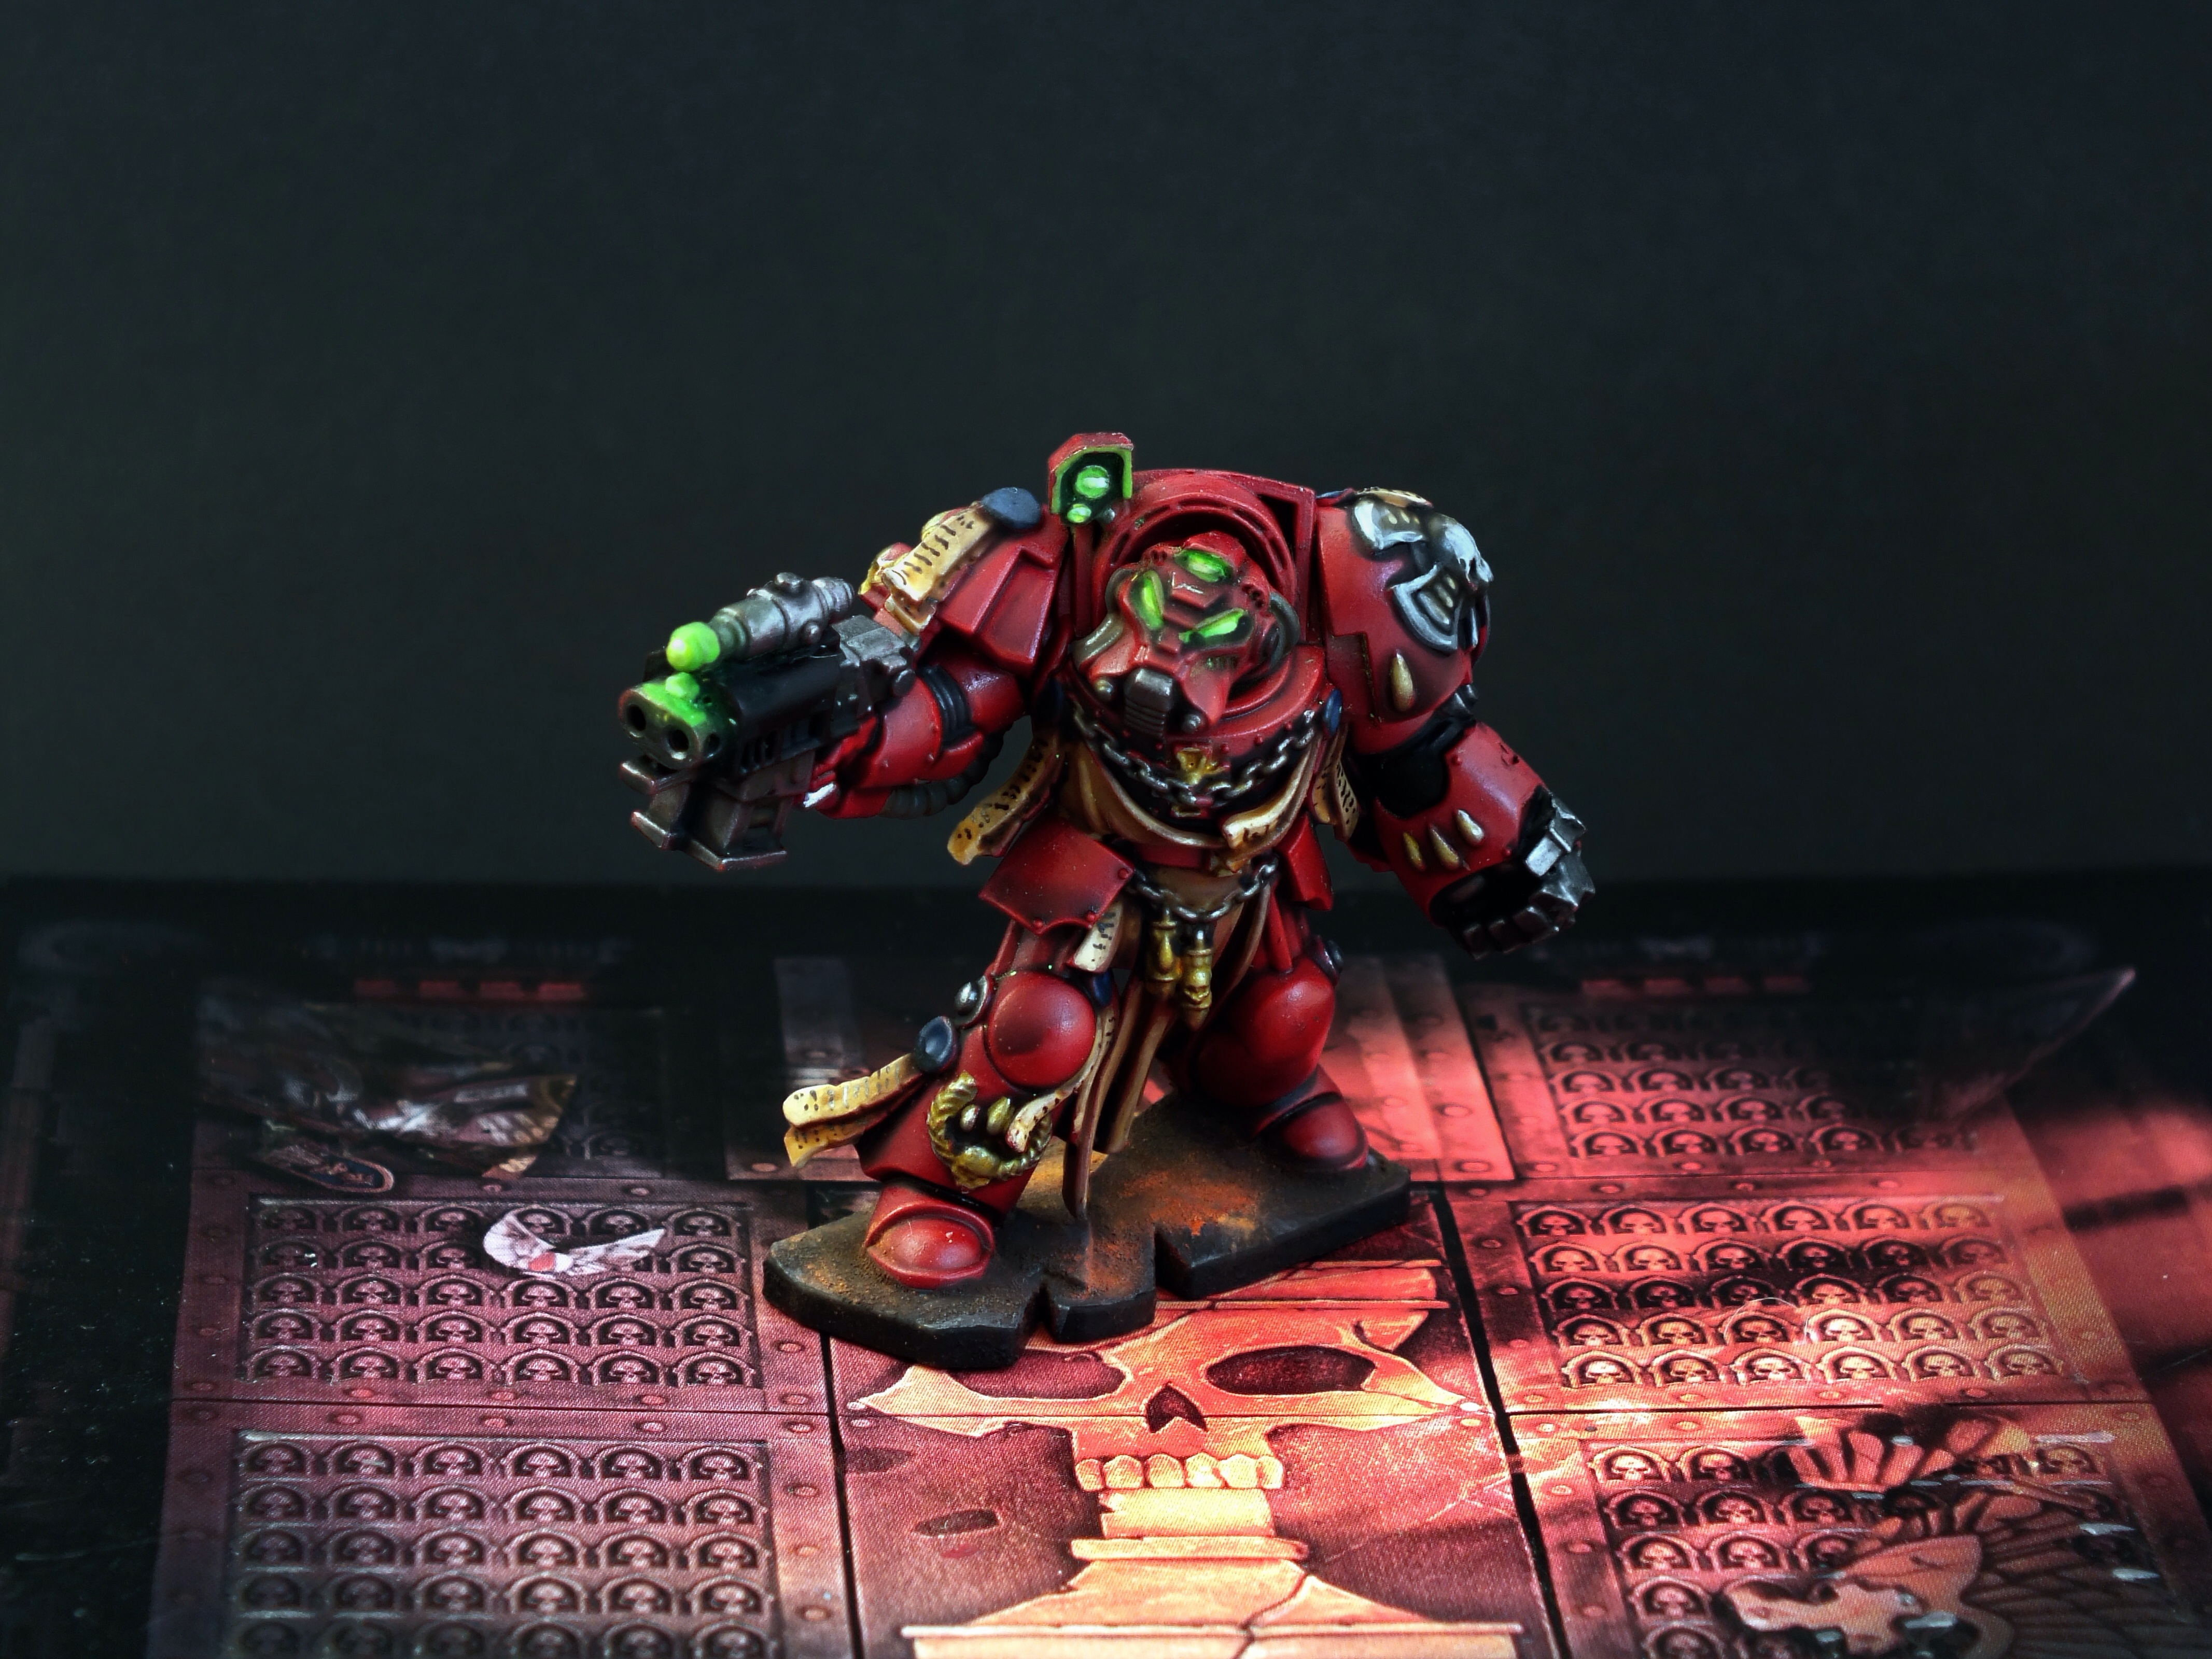 Space Hulk Terminators Commission Complete warhammer 40k 2 space marines space hulk showcase commissions blood angels  wh40k warhammer 40k space hulk blood angels